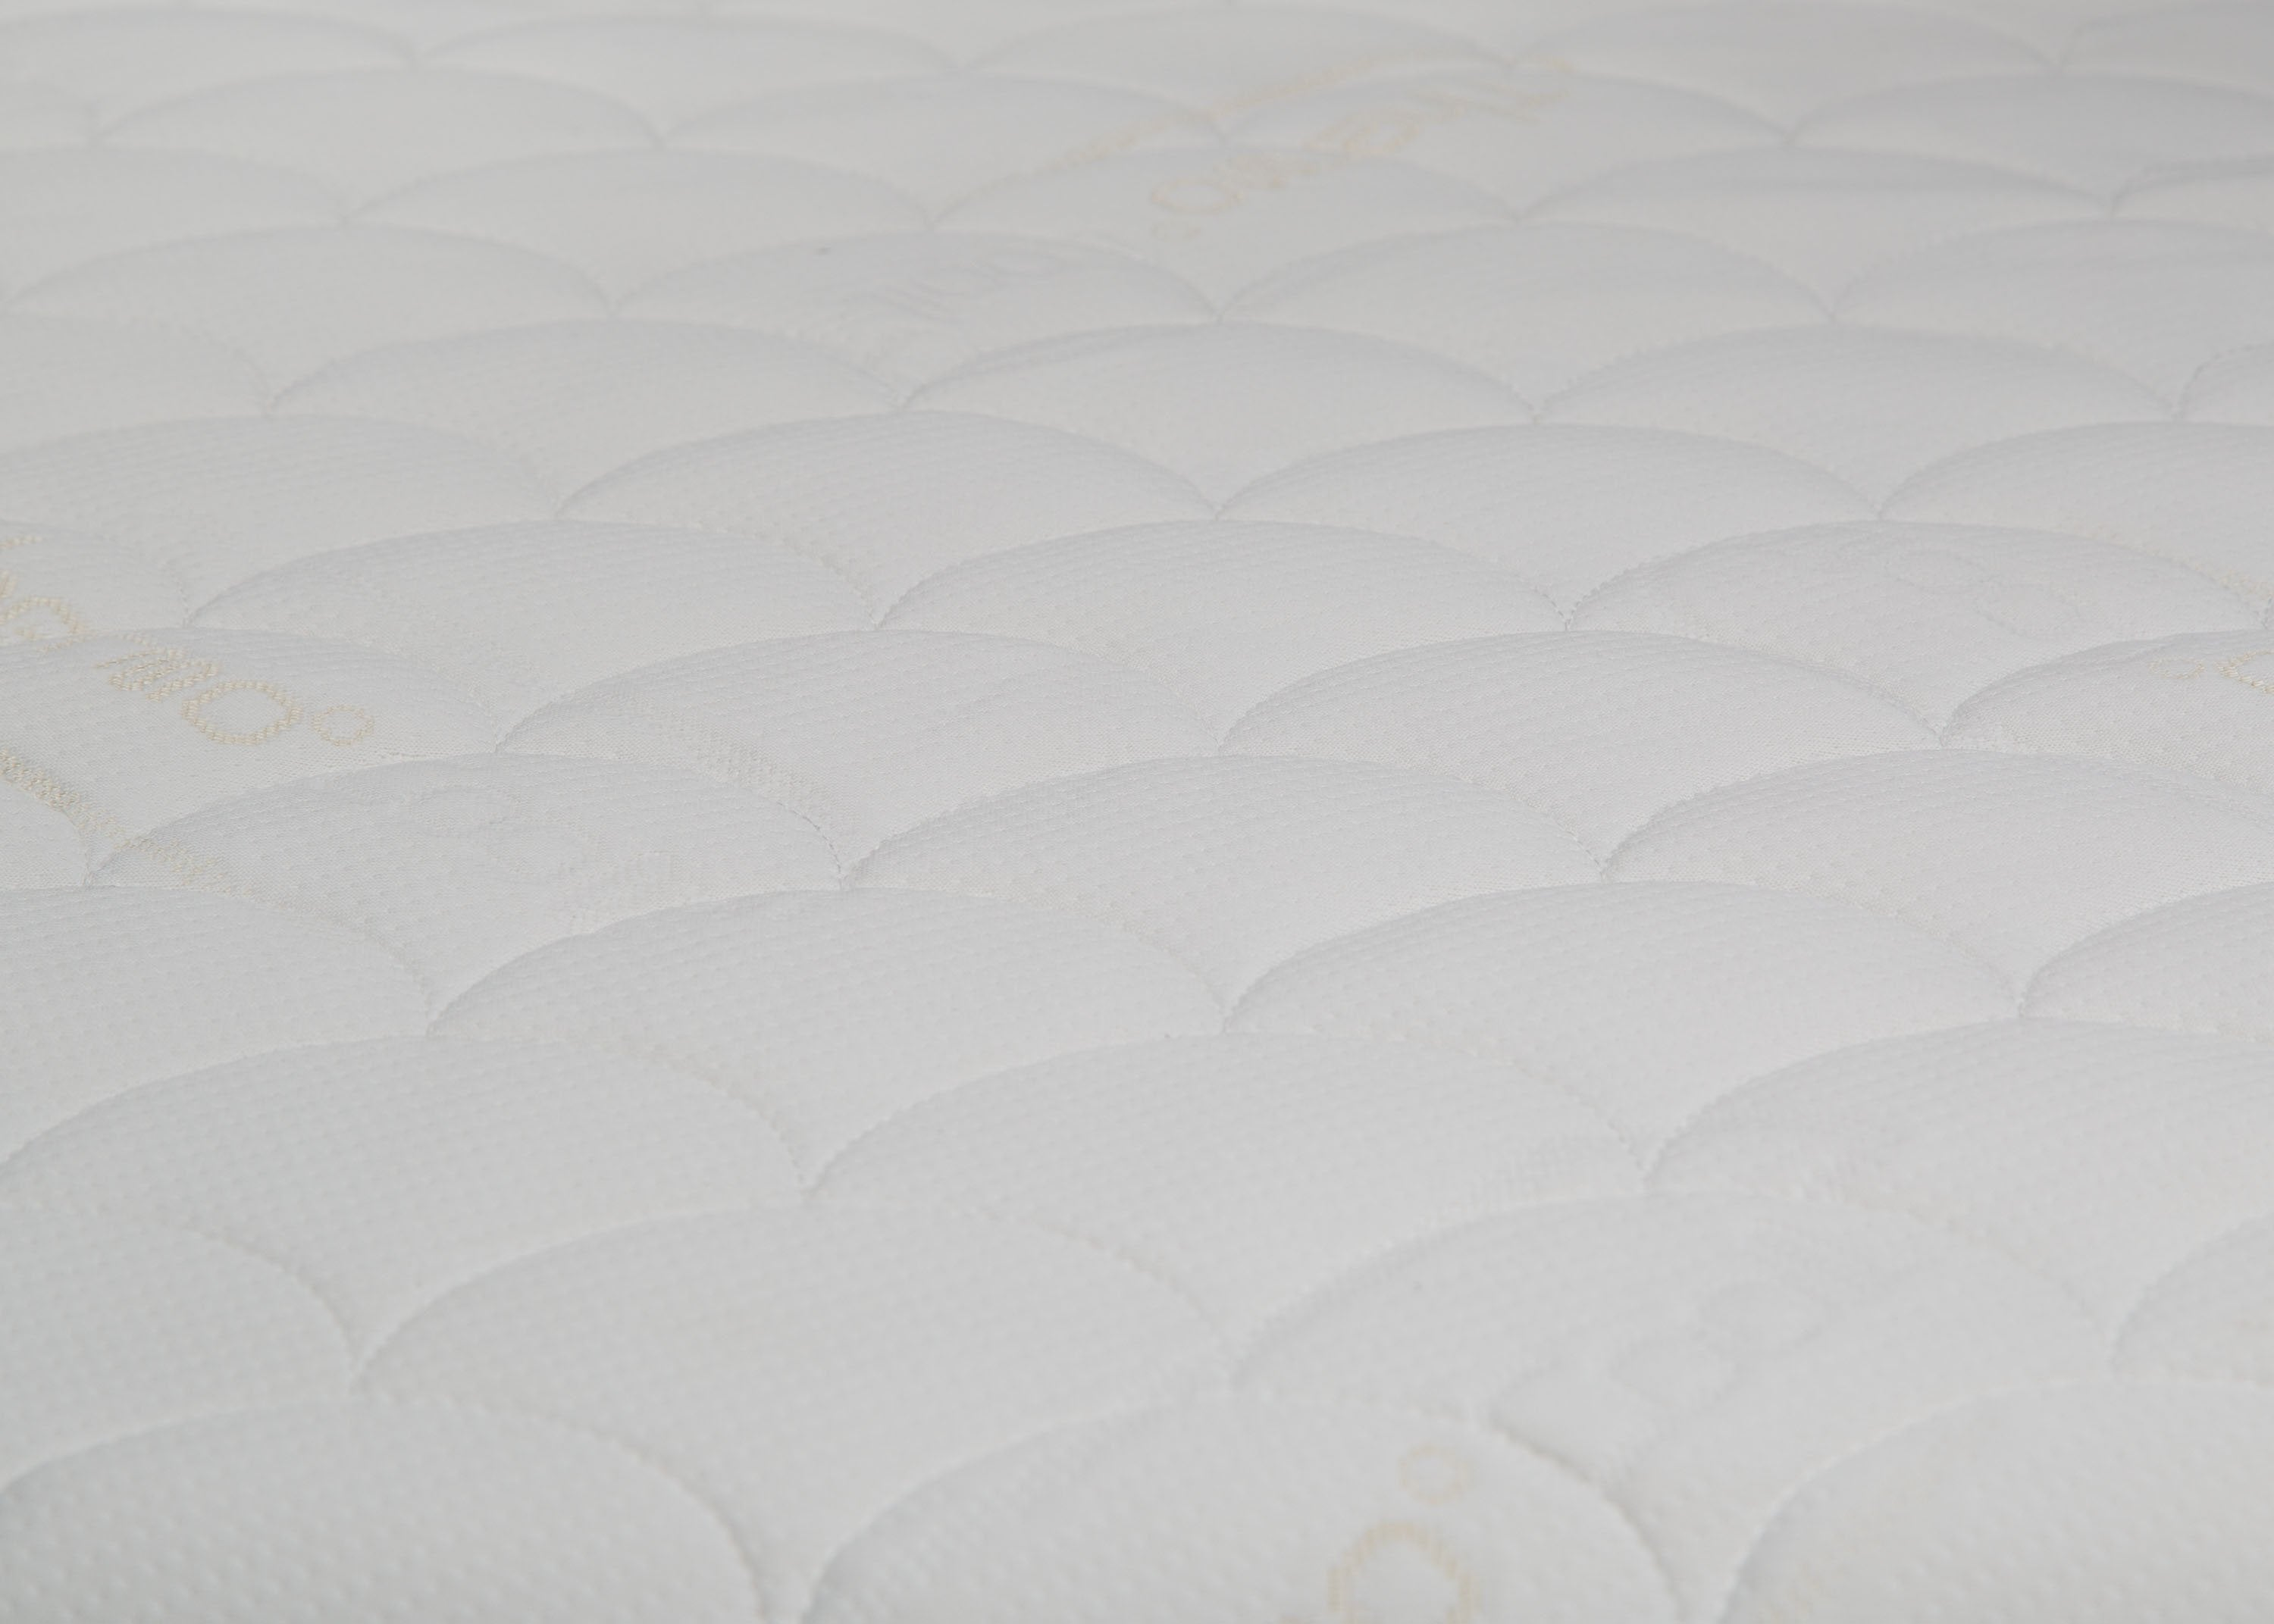 company mattress pad baby com natural american made cover and fitted with organic crib quilted waterproof cotton color cribs toddler amazon dp size